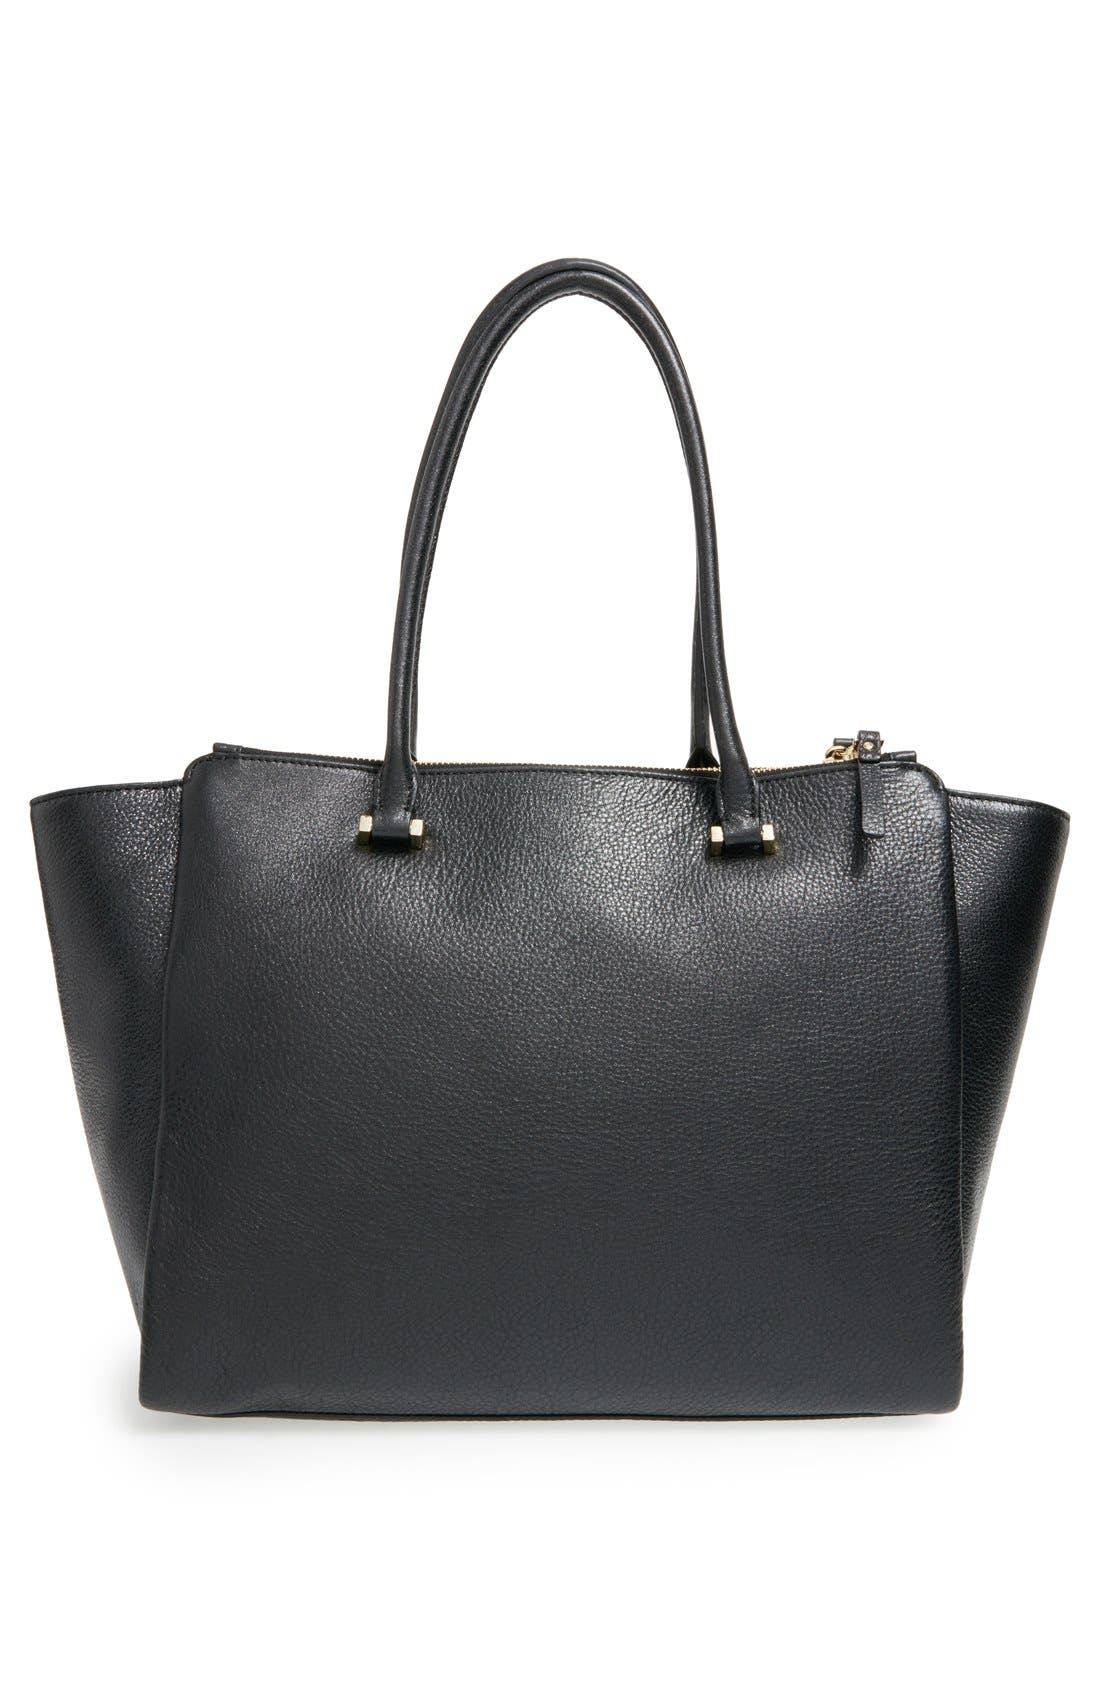 'emerson place - smooth holland' leather tote,                             Alternate thumbnail 6, color,                             001